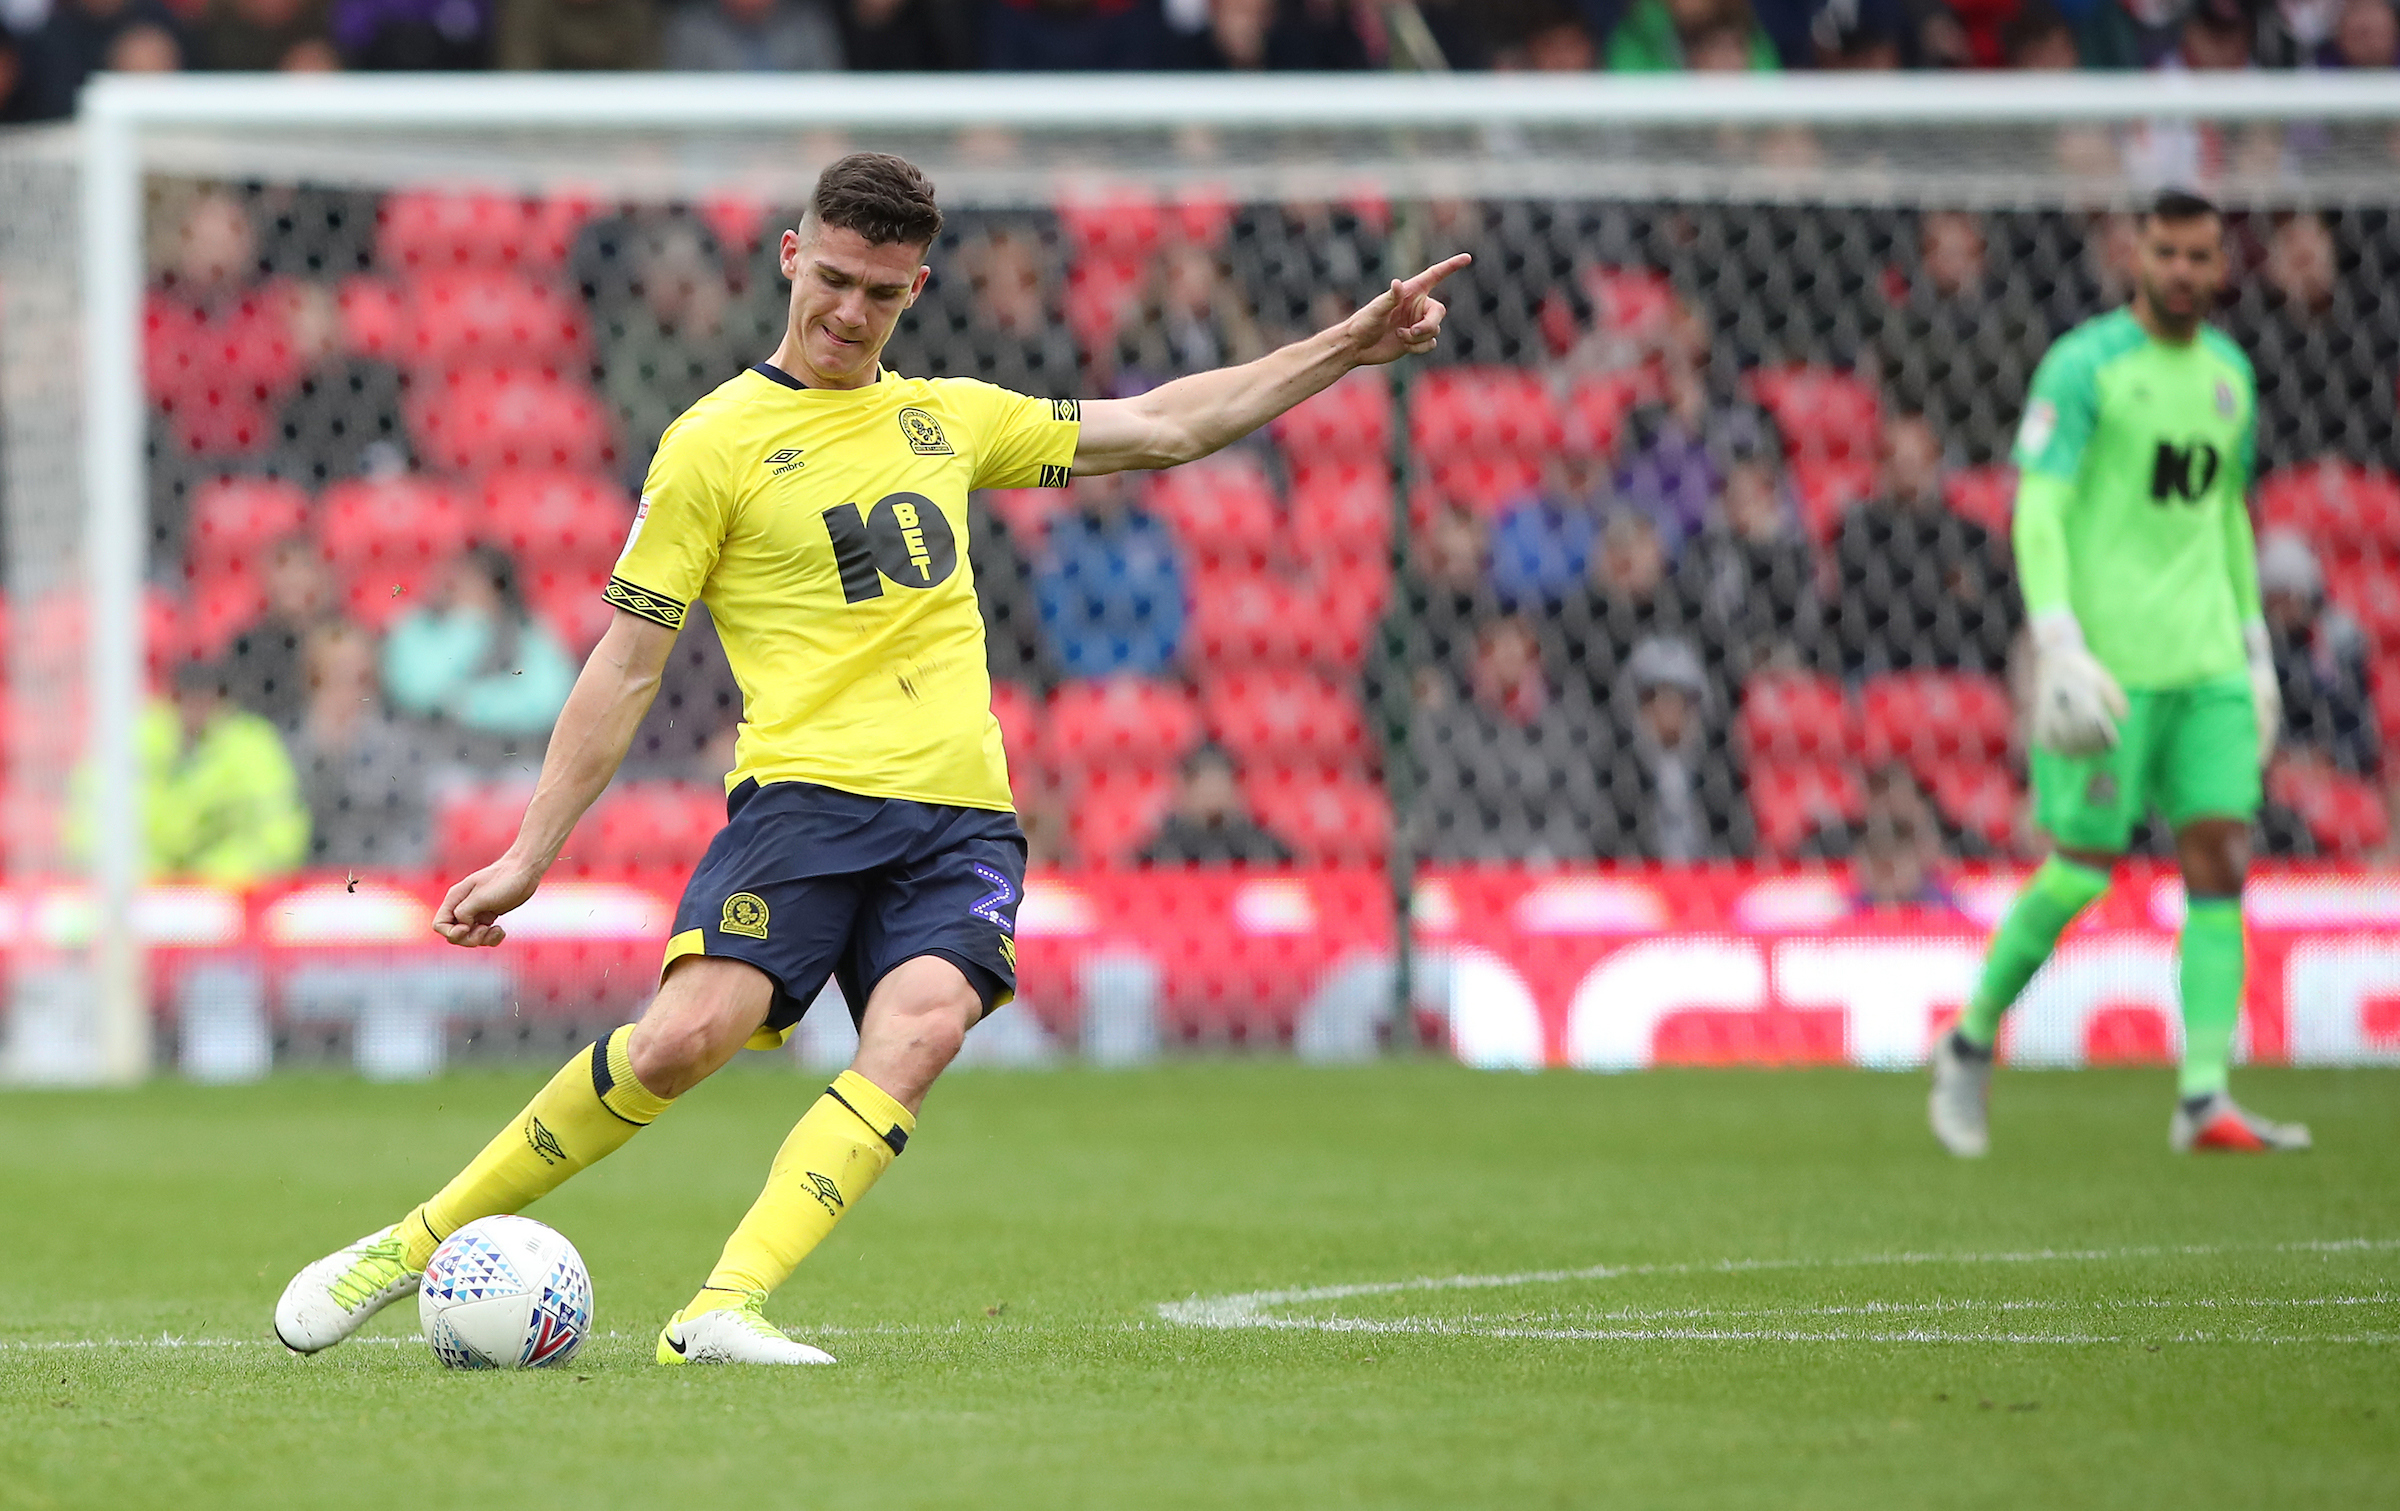 Darragh Lenihan could return for Rovers against Middlesbrough this weekend